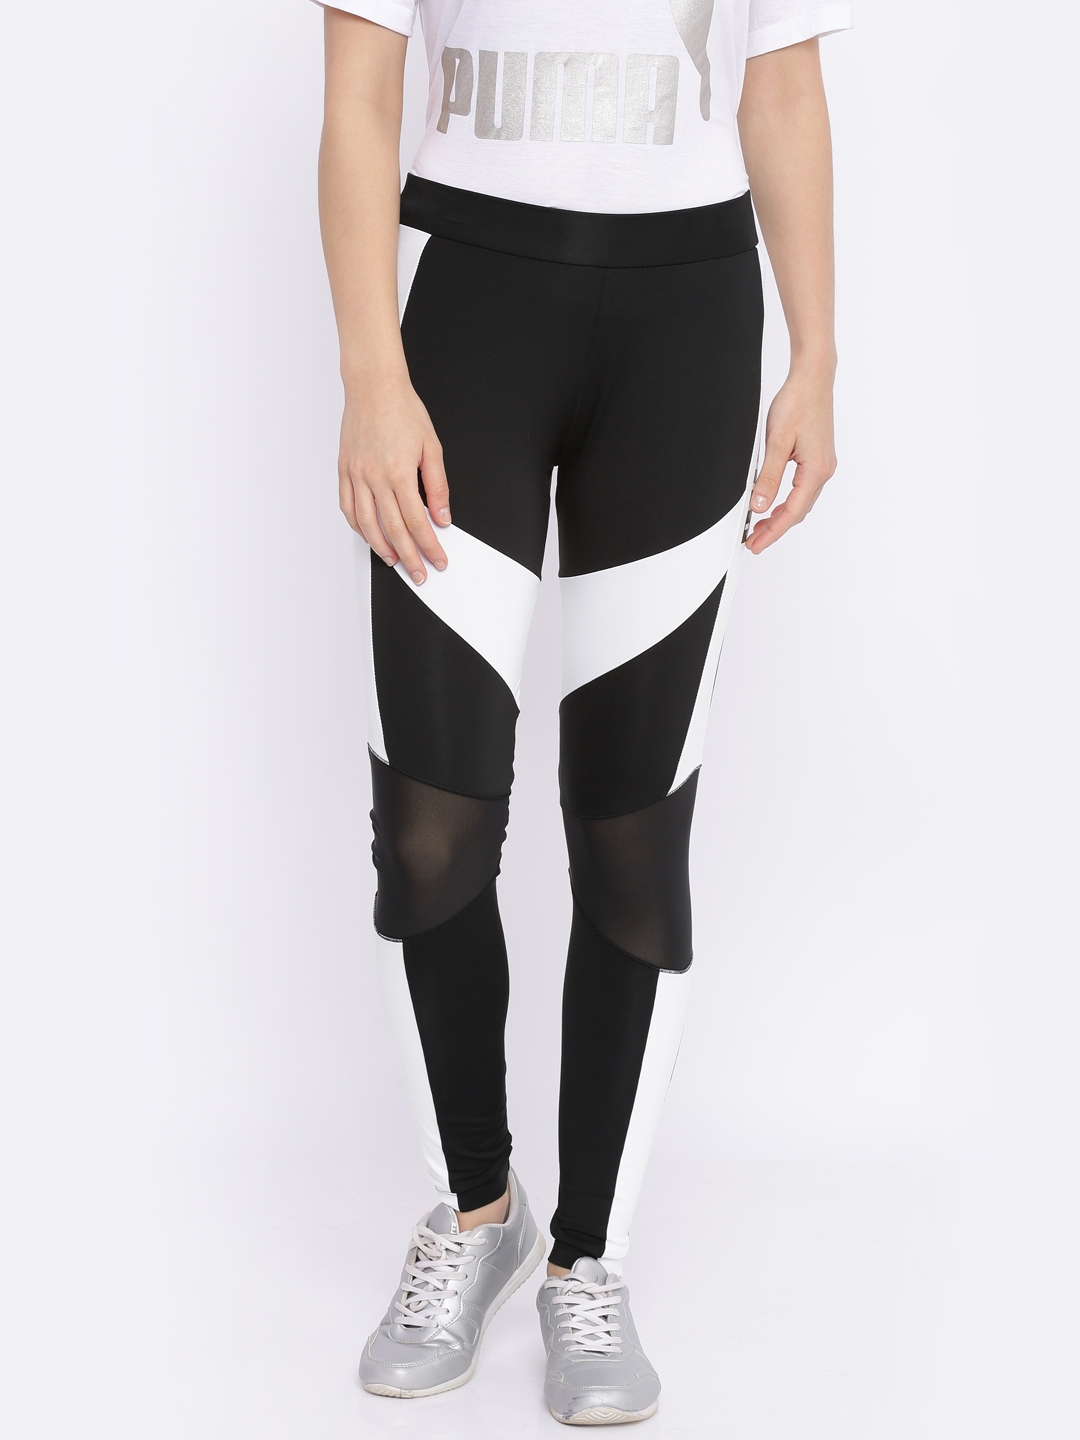 b01986e4406af Buy Puma Black & White Archive T7 Tights - Tights for Women 2445991 ...